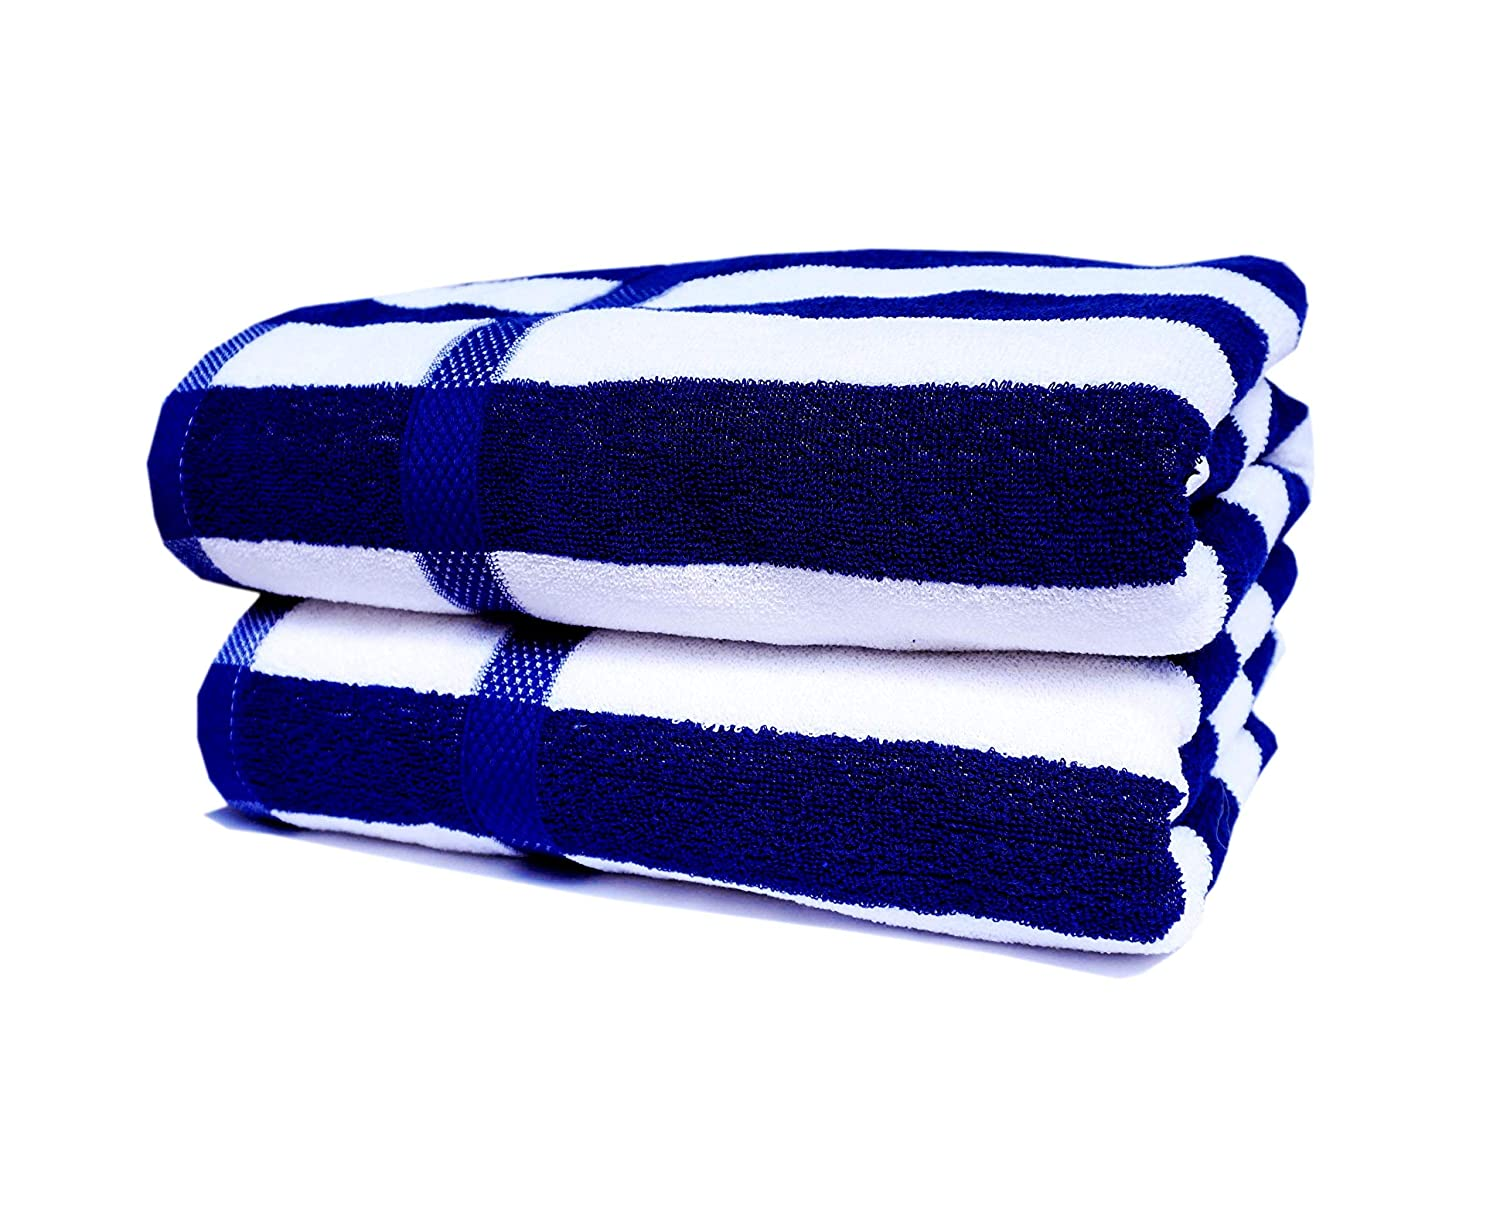 Space Fly Very Striped 2 Cotton Big Size Bath Towel Cotton Top Bath Towel Brands In India